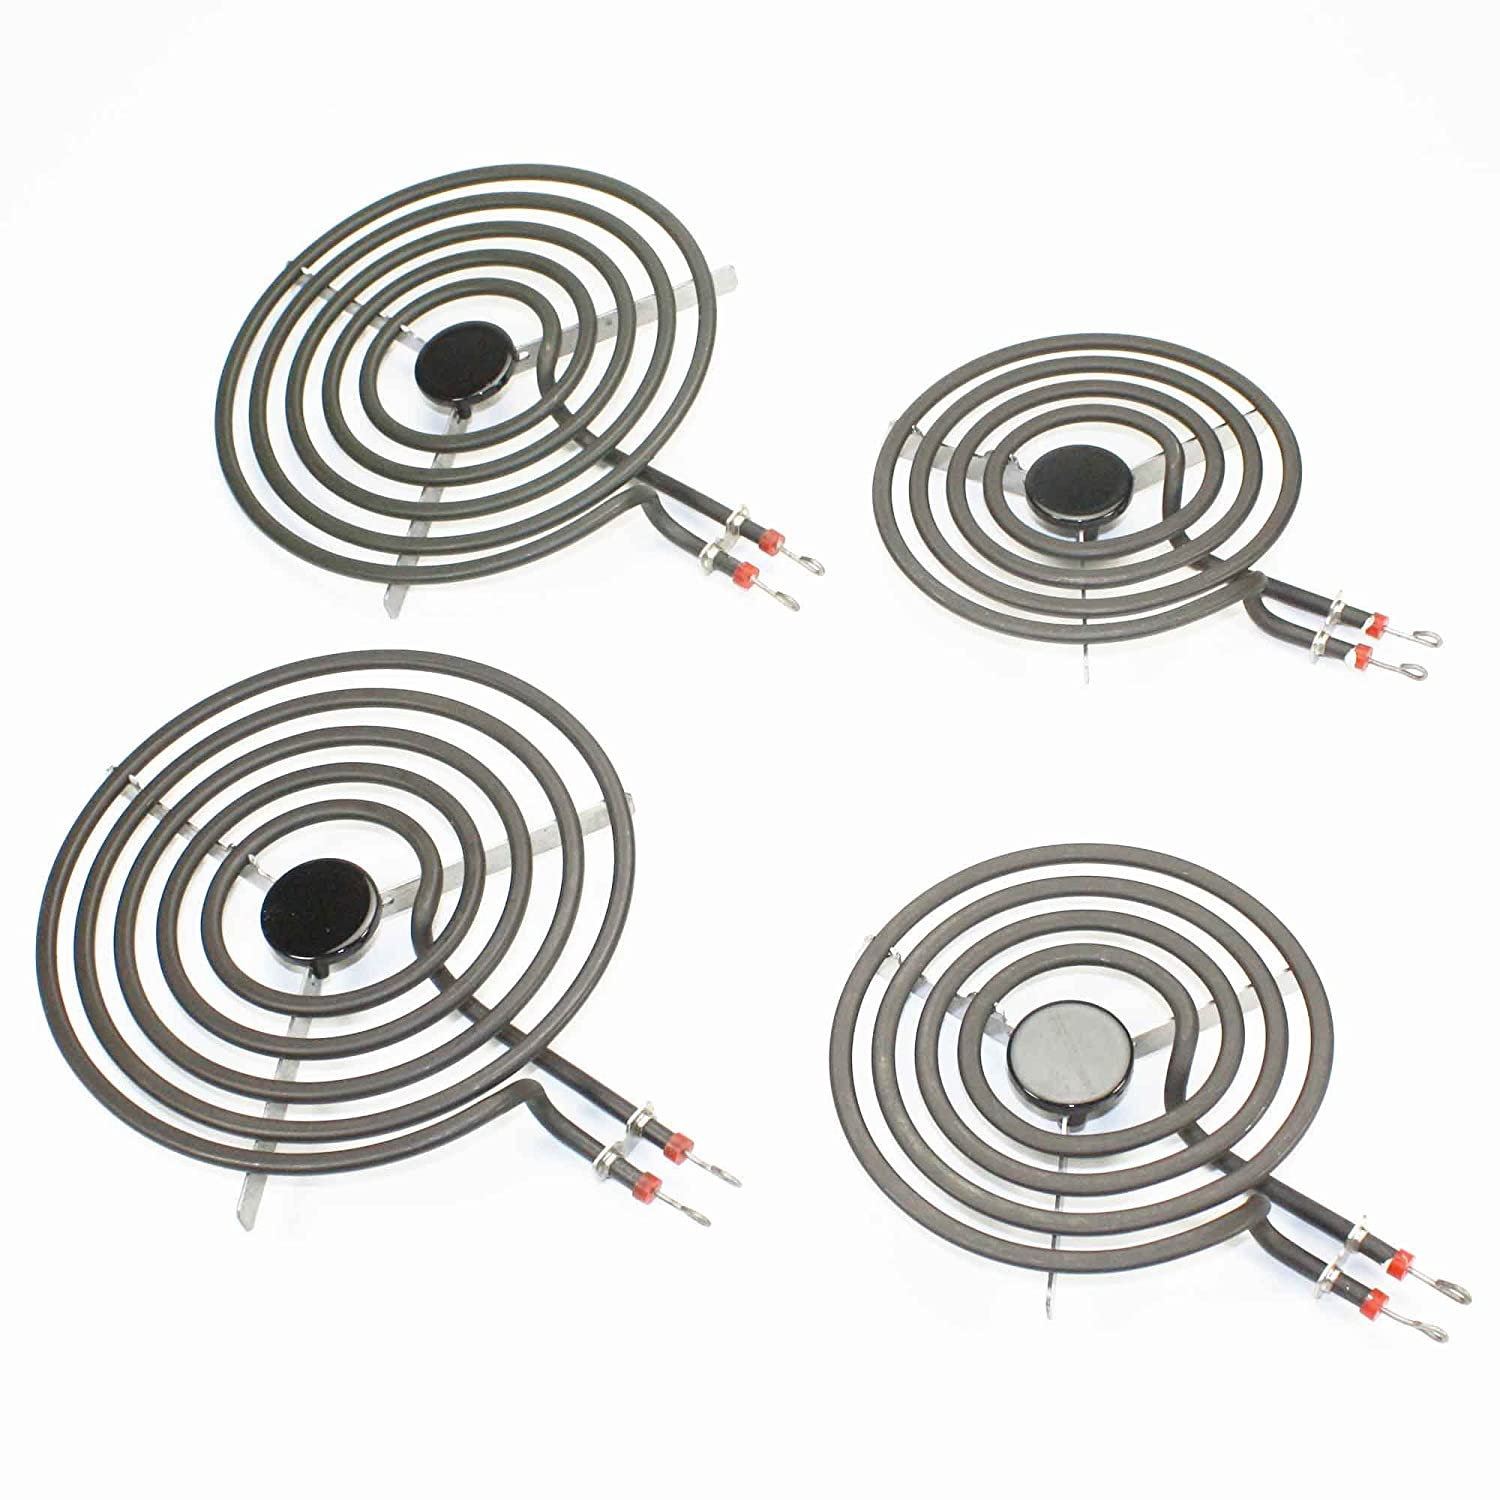 Supplying Demand MP22YA Electric Range Burner Kit 4 Piece Set MP15YA MP21YA